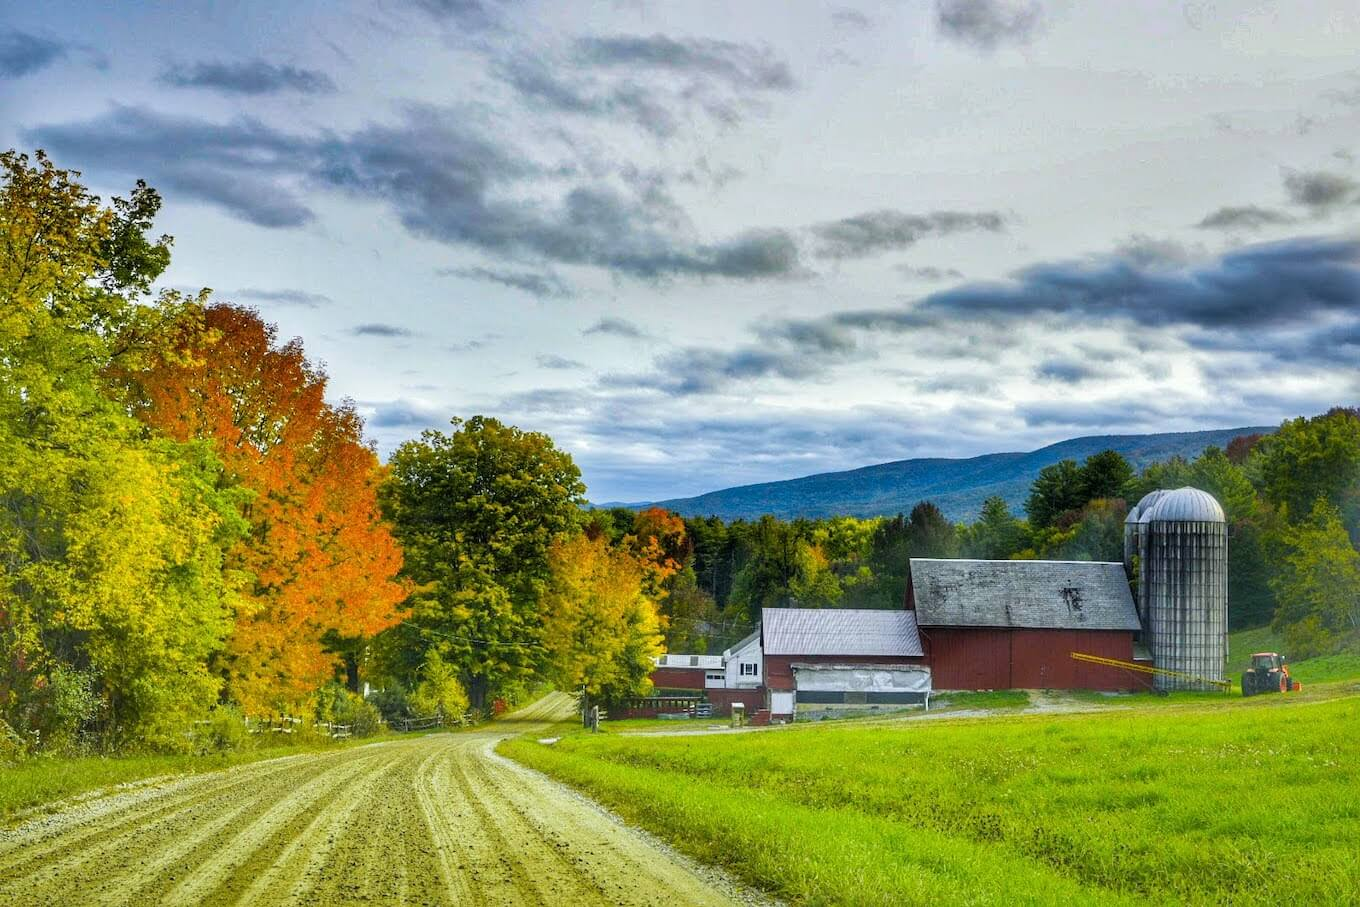 A photo of a red barn near a dirt road in the country, used to demonstrate how to create balance within a photograph.